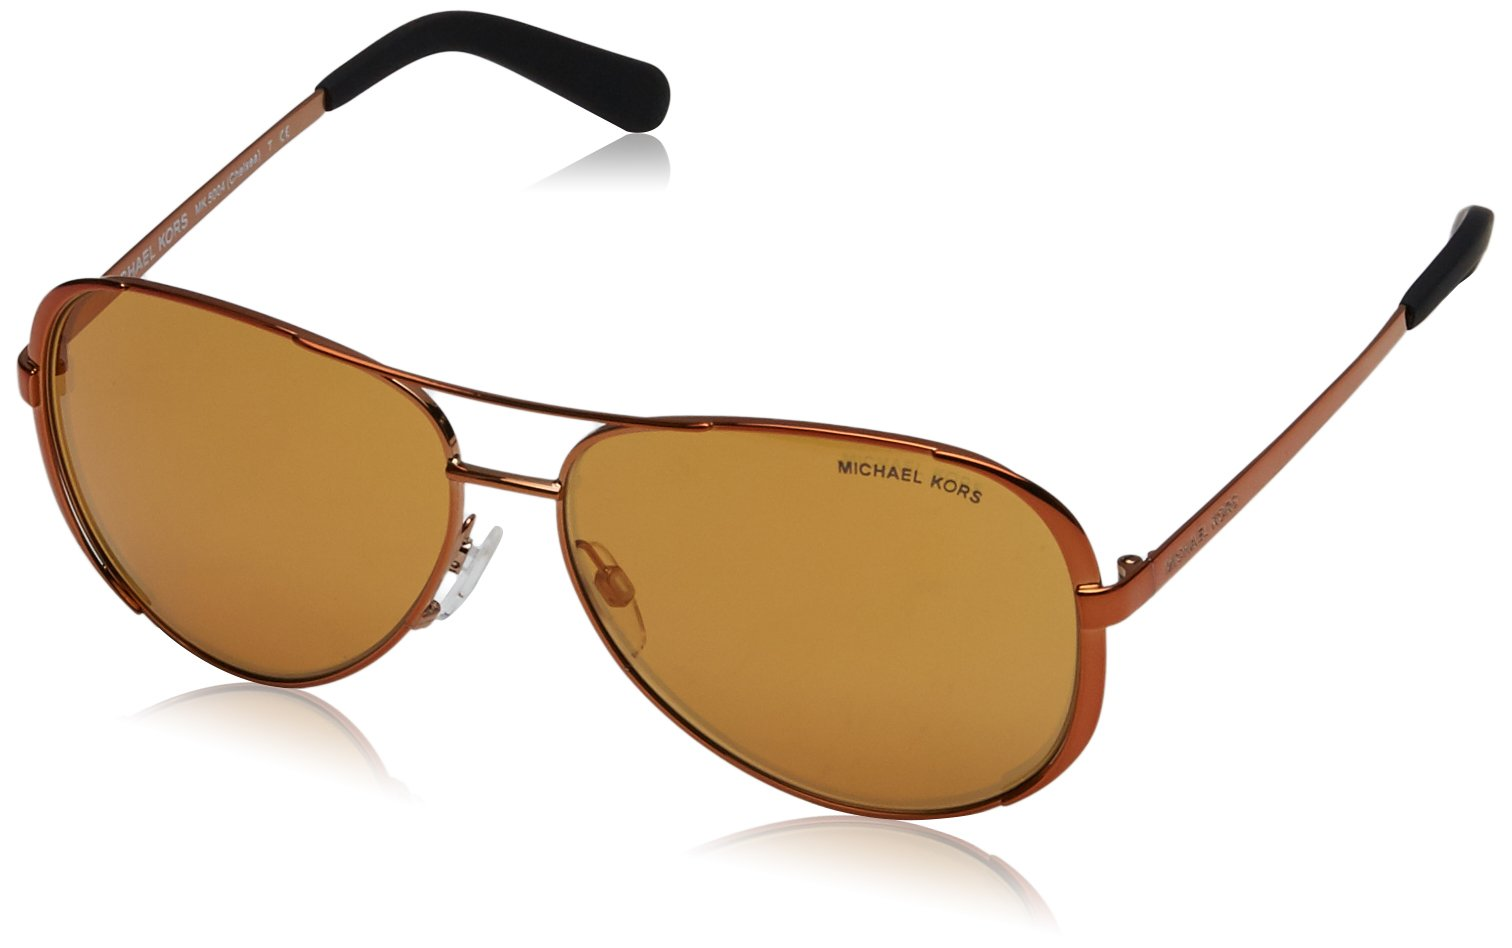 Michael Kors MK5004 Chelsea Sunglasses, Copper by Michael Kors